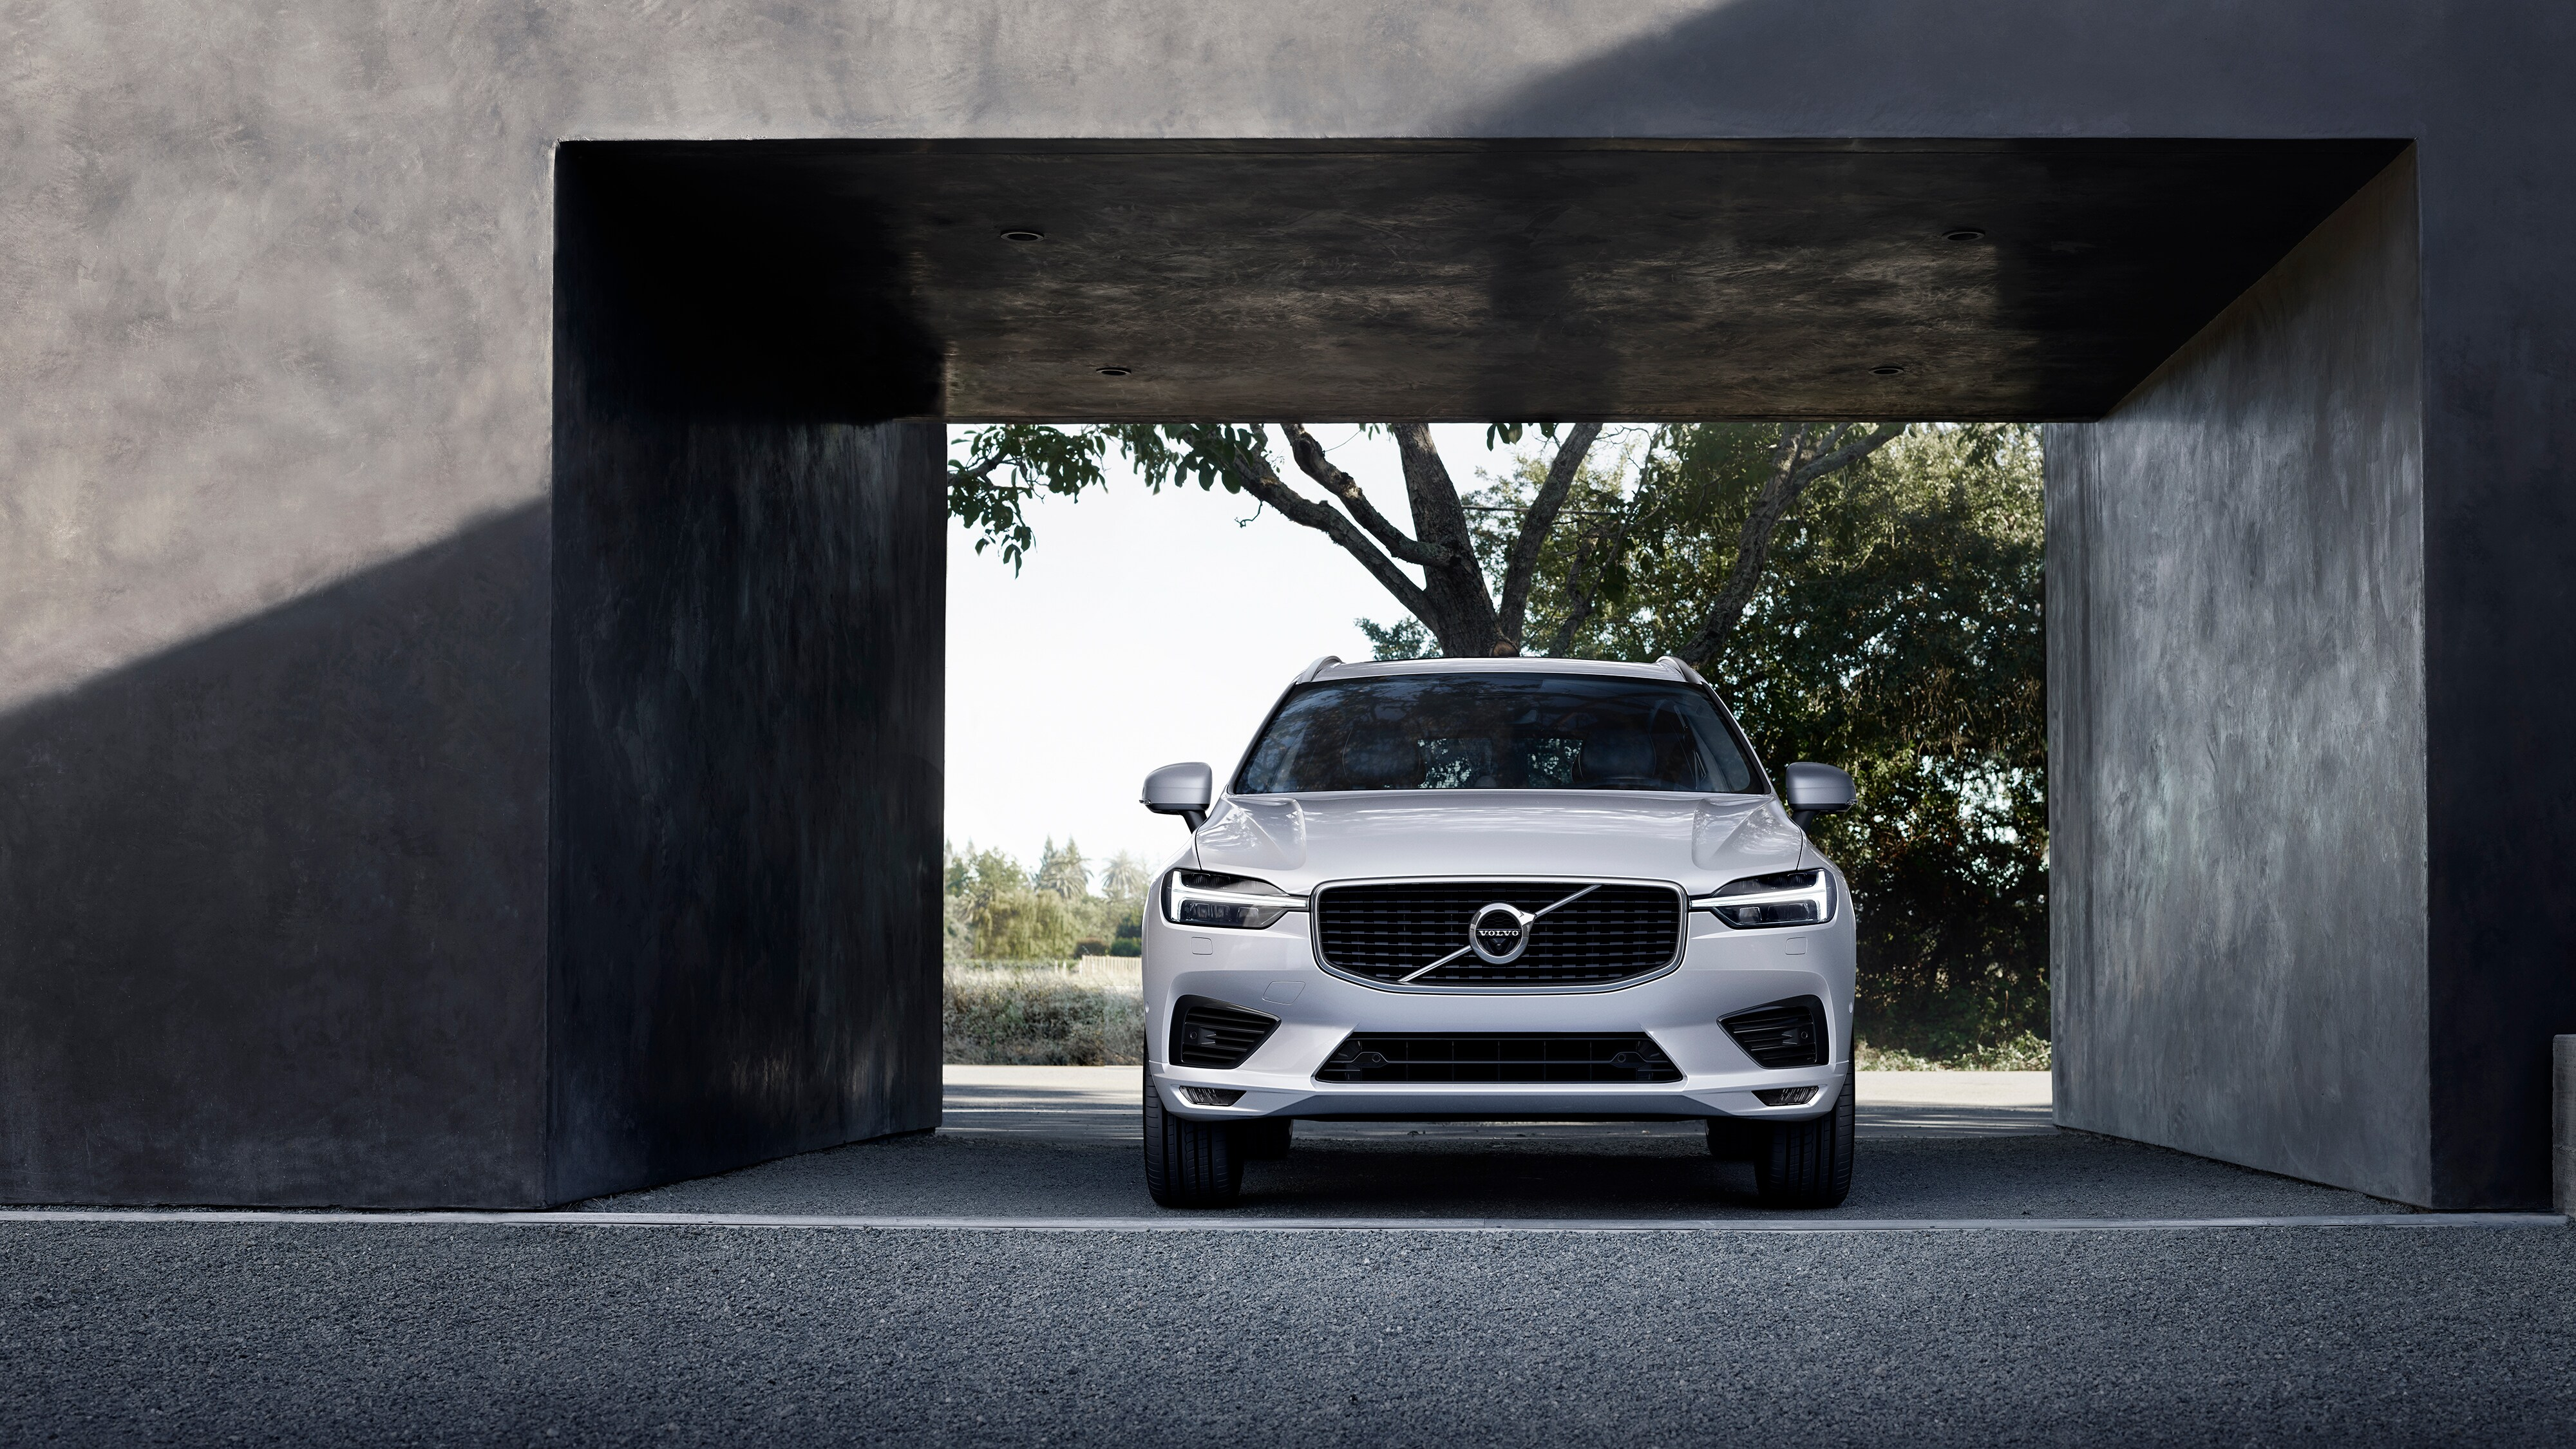 The new Volvo XC60 T8 Twin Engine plug-in hybrid parked in a covered parking bay